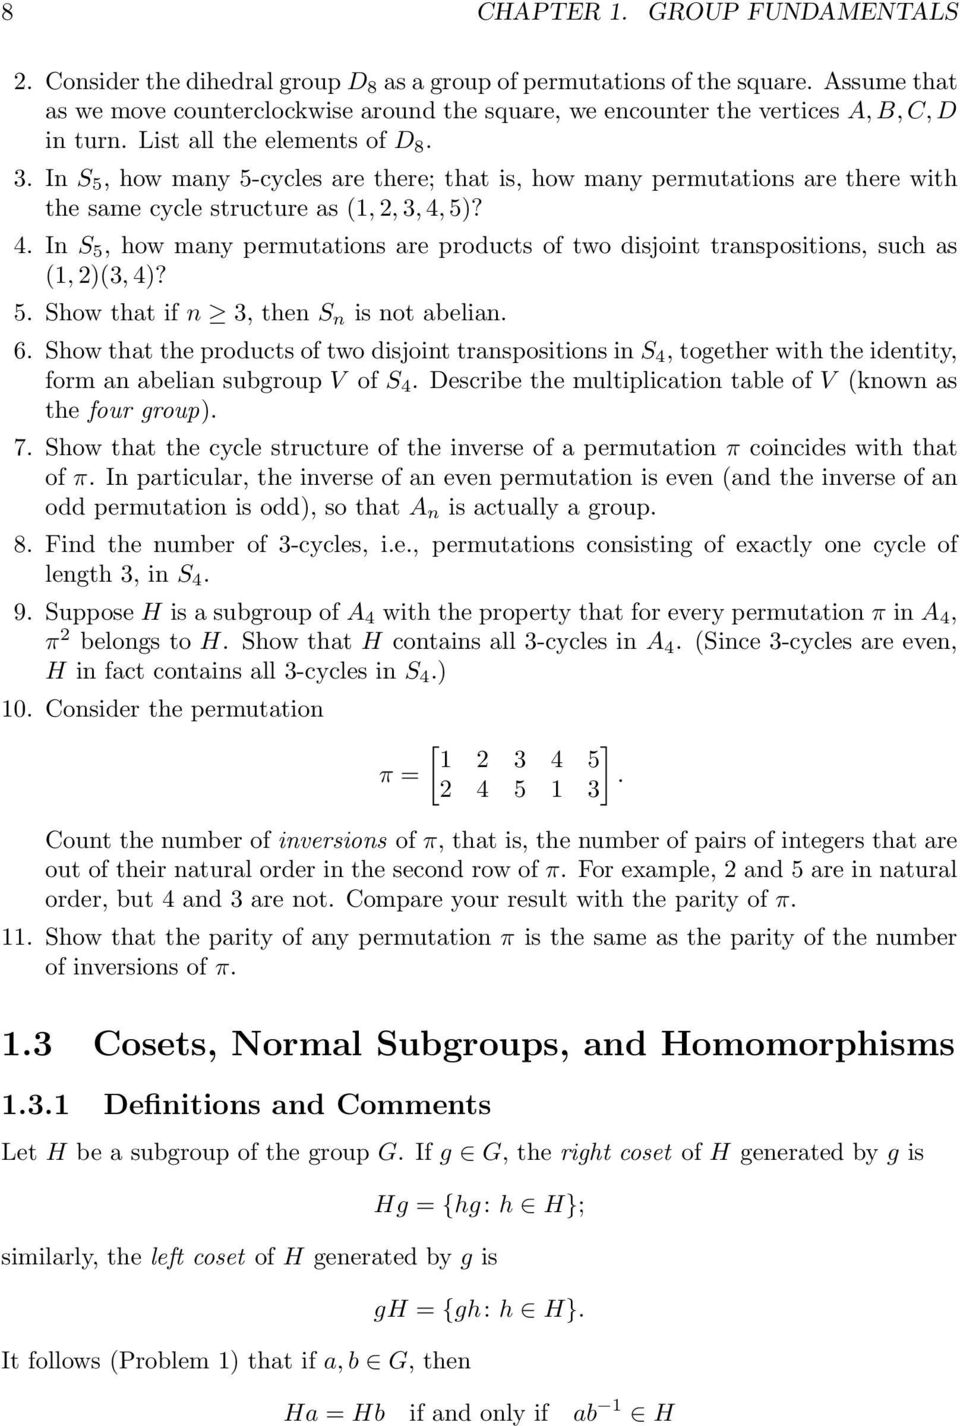 In S 5, how many 5-cycles are there; that is, how many permutations are there with the same cycle structure as (1, 2, 3, 4,